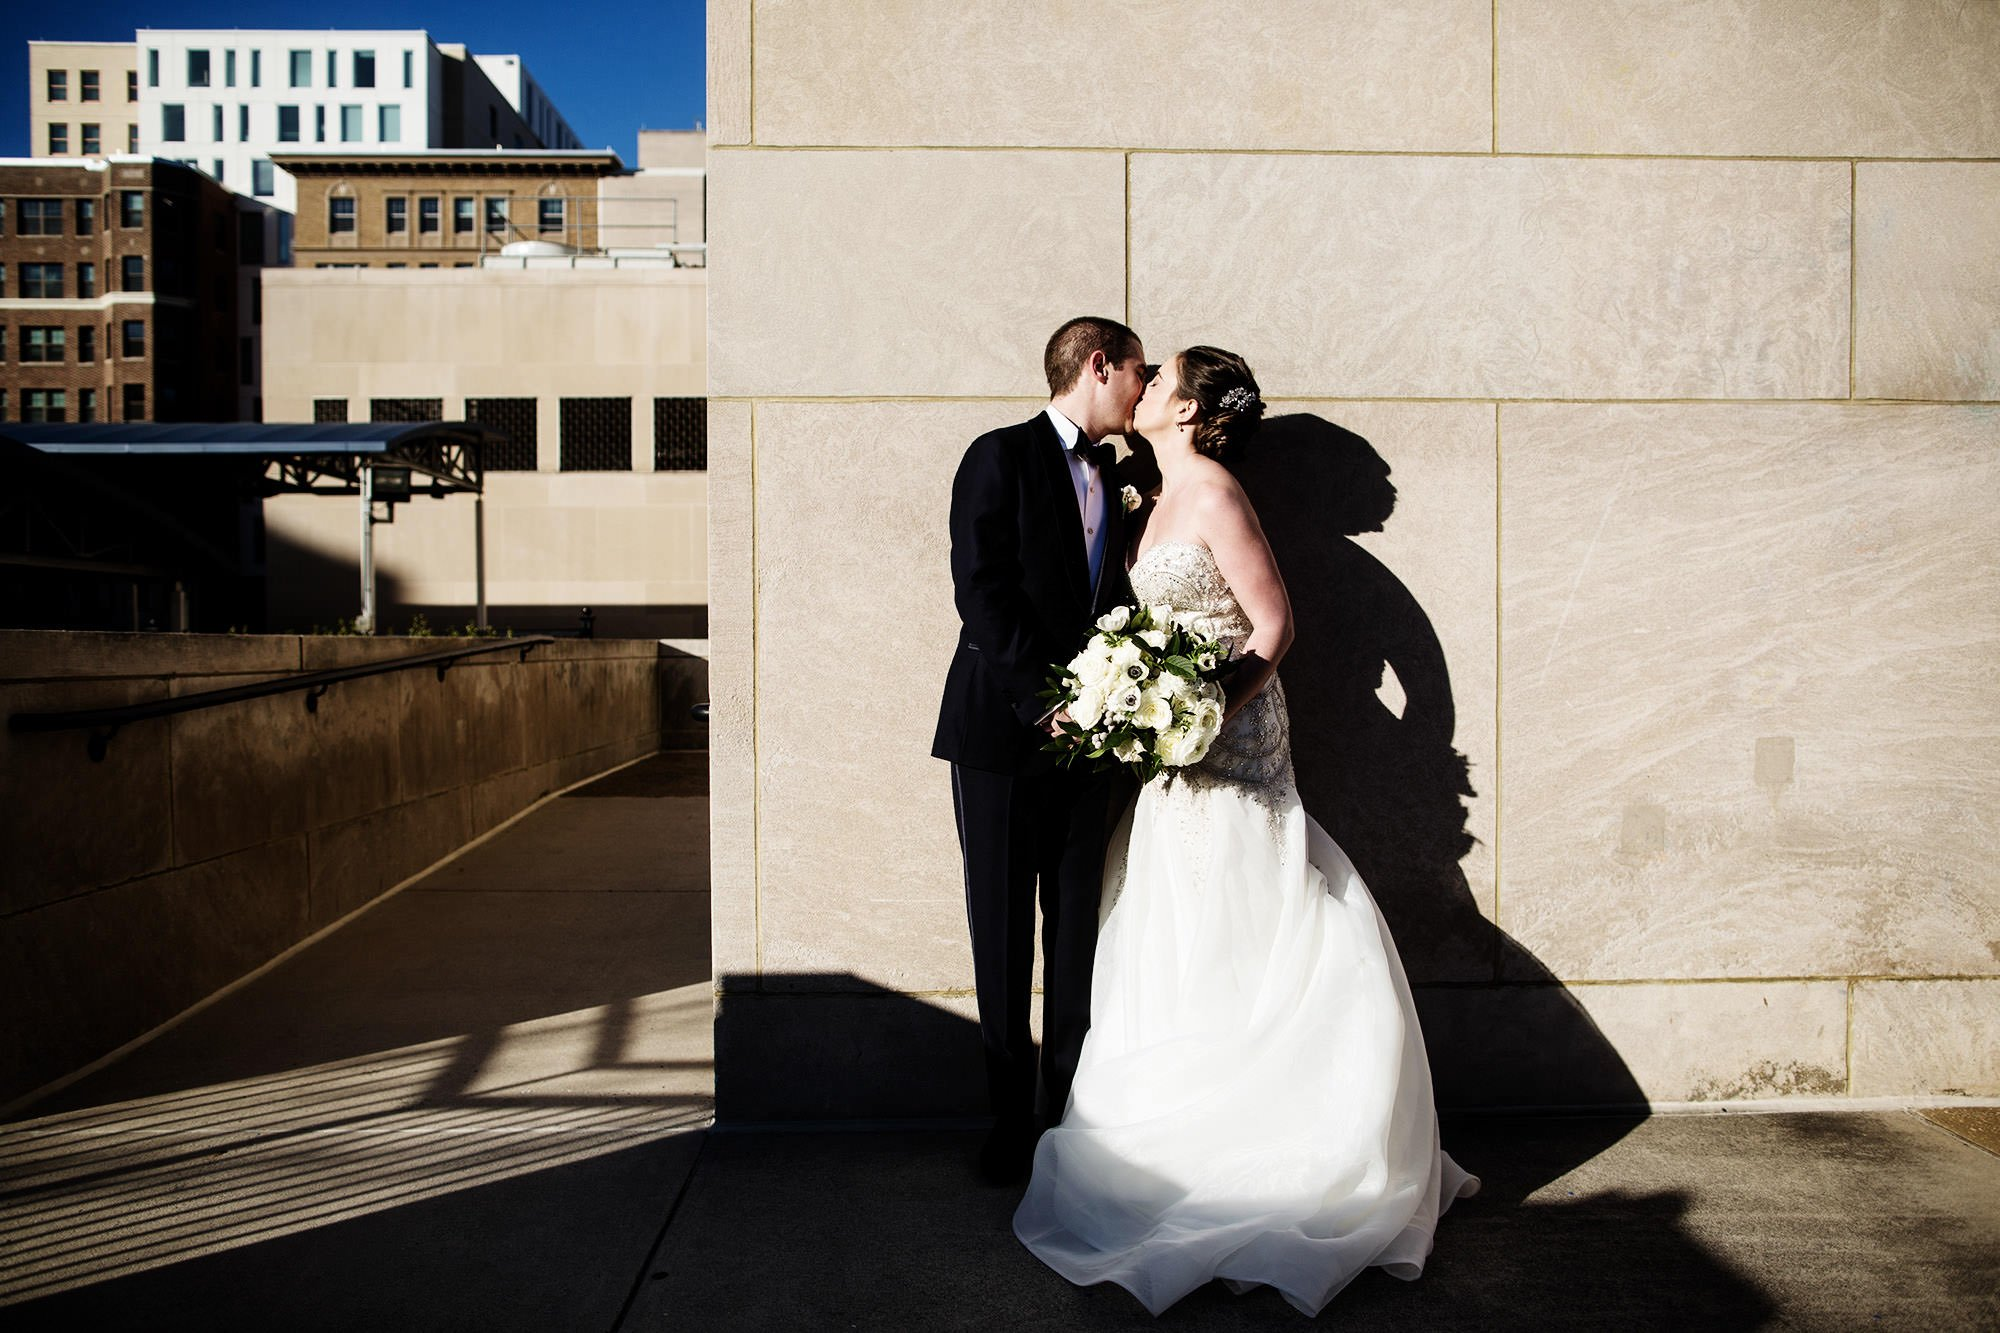 A portrait of the Bride and Groom at Kogan Plaza.